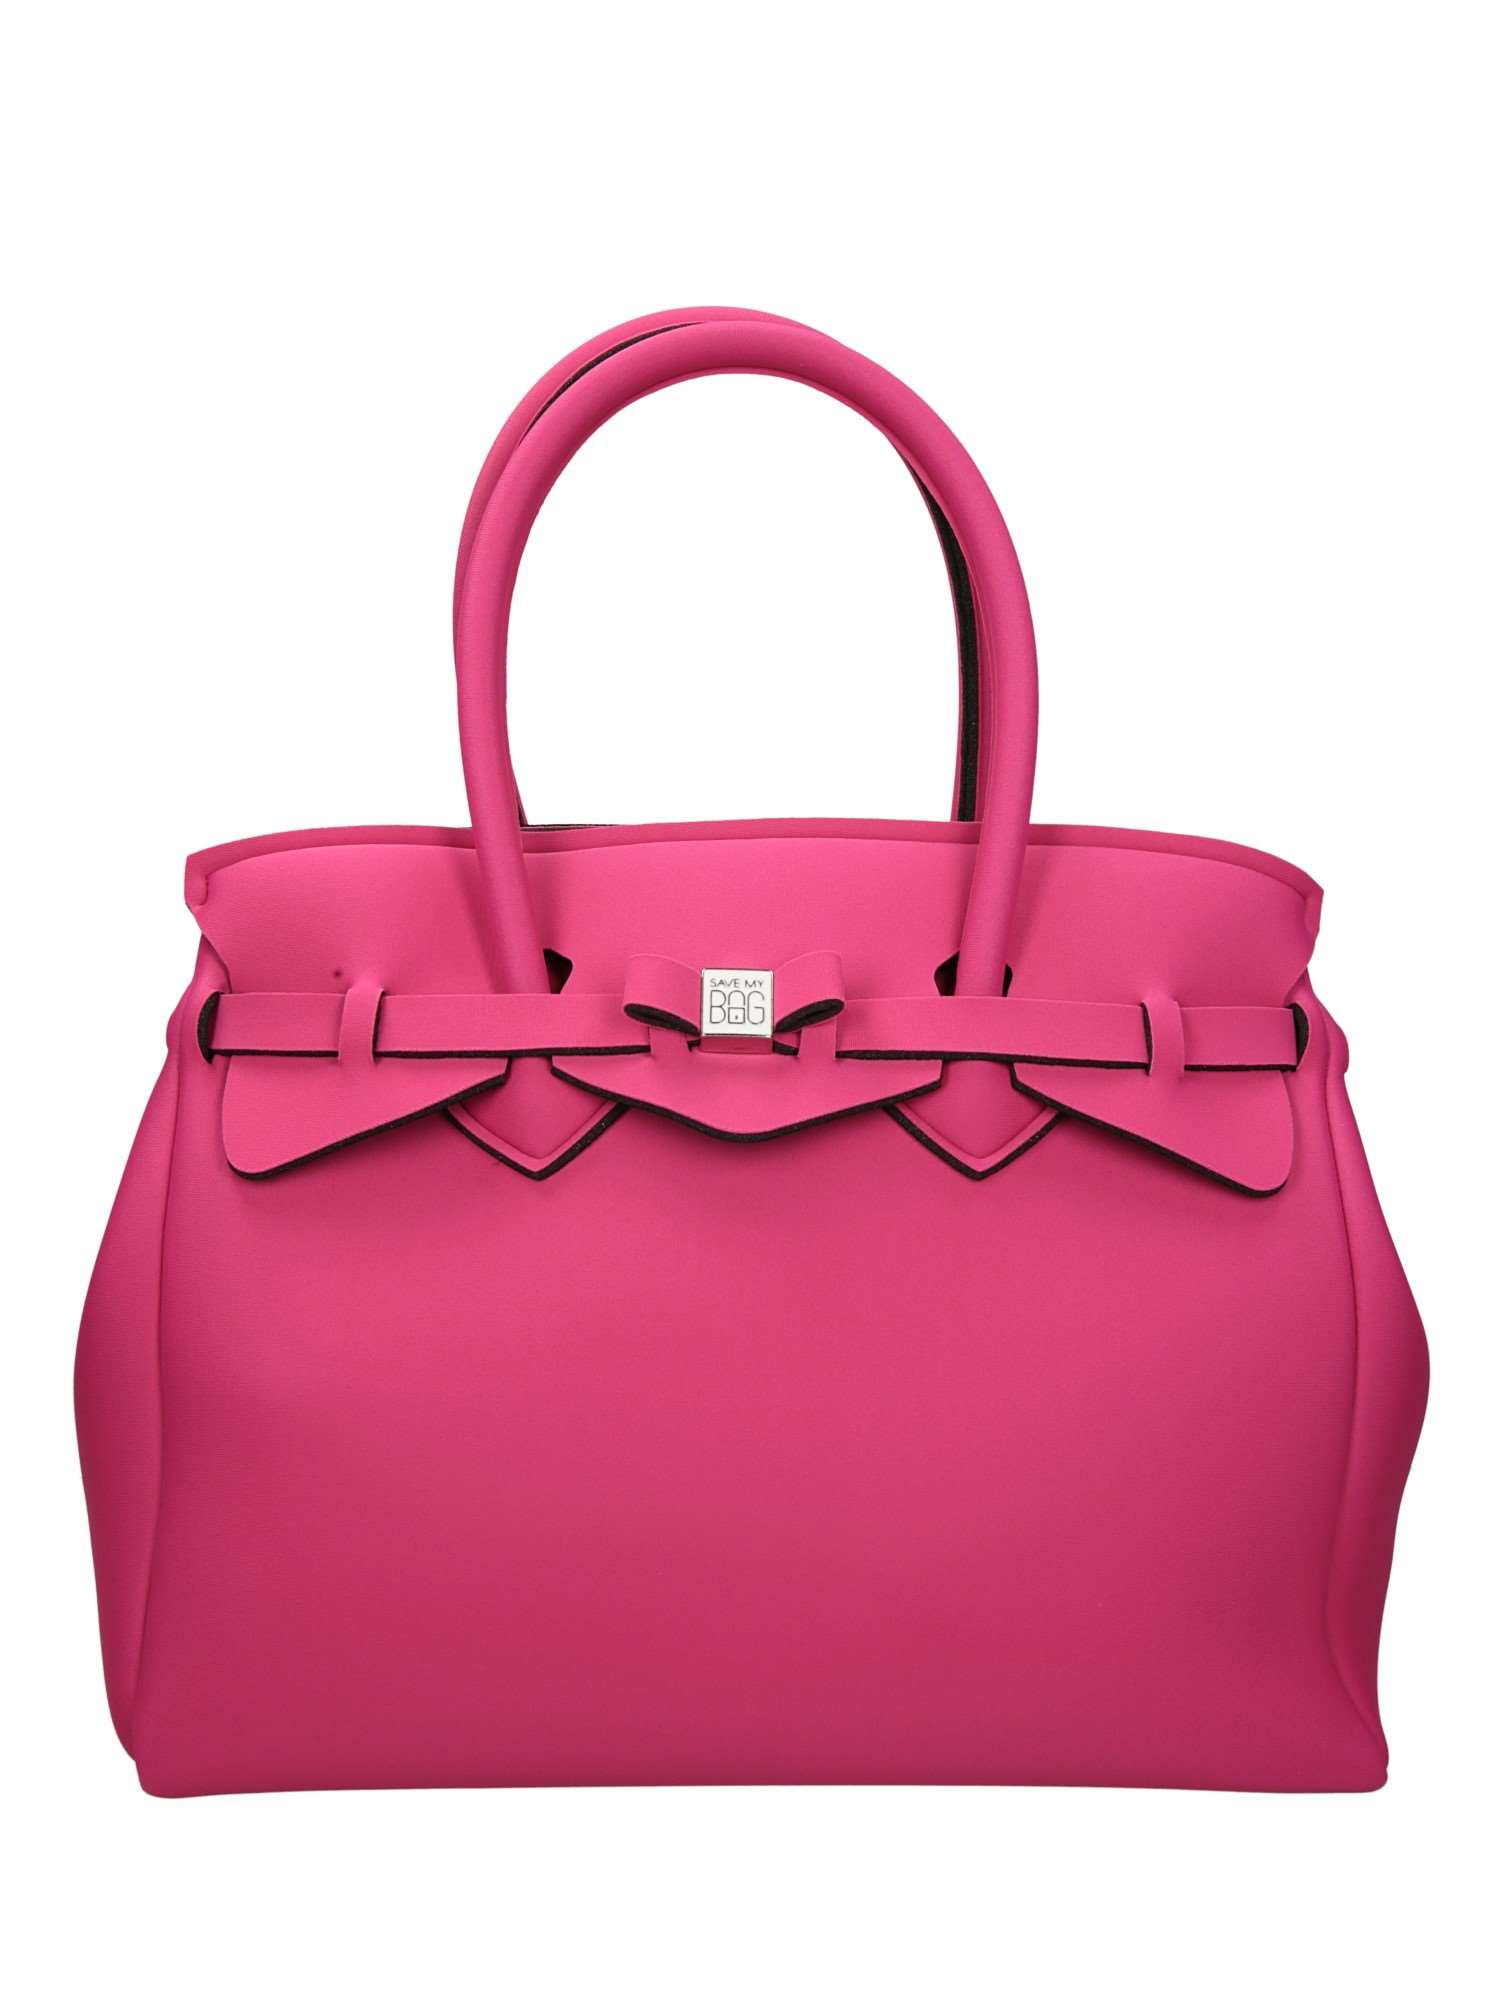 Save My Bag MISS PLUS Fuxia Accessori Donna Borse